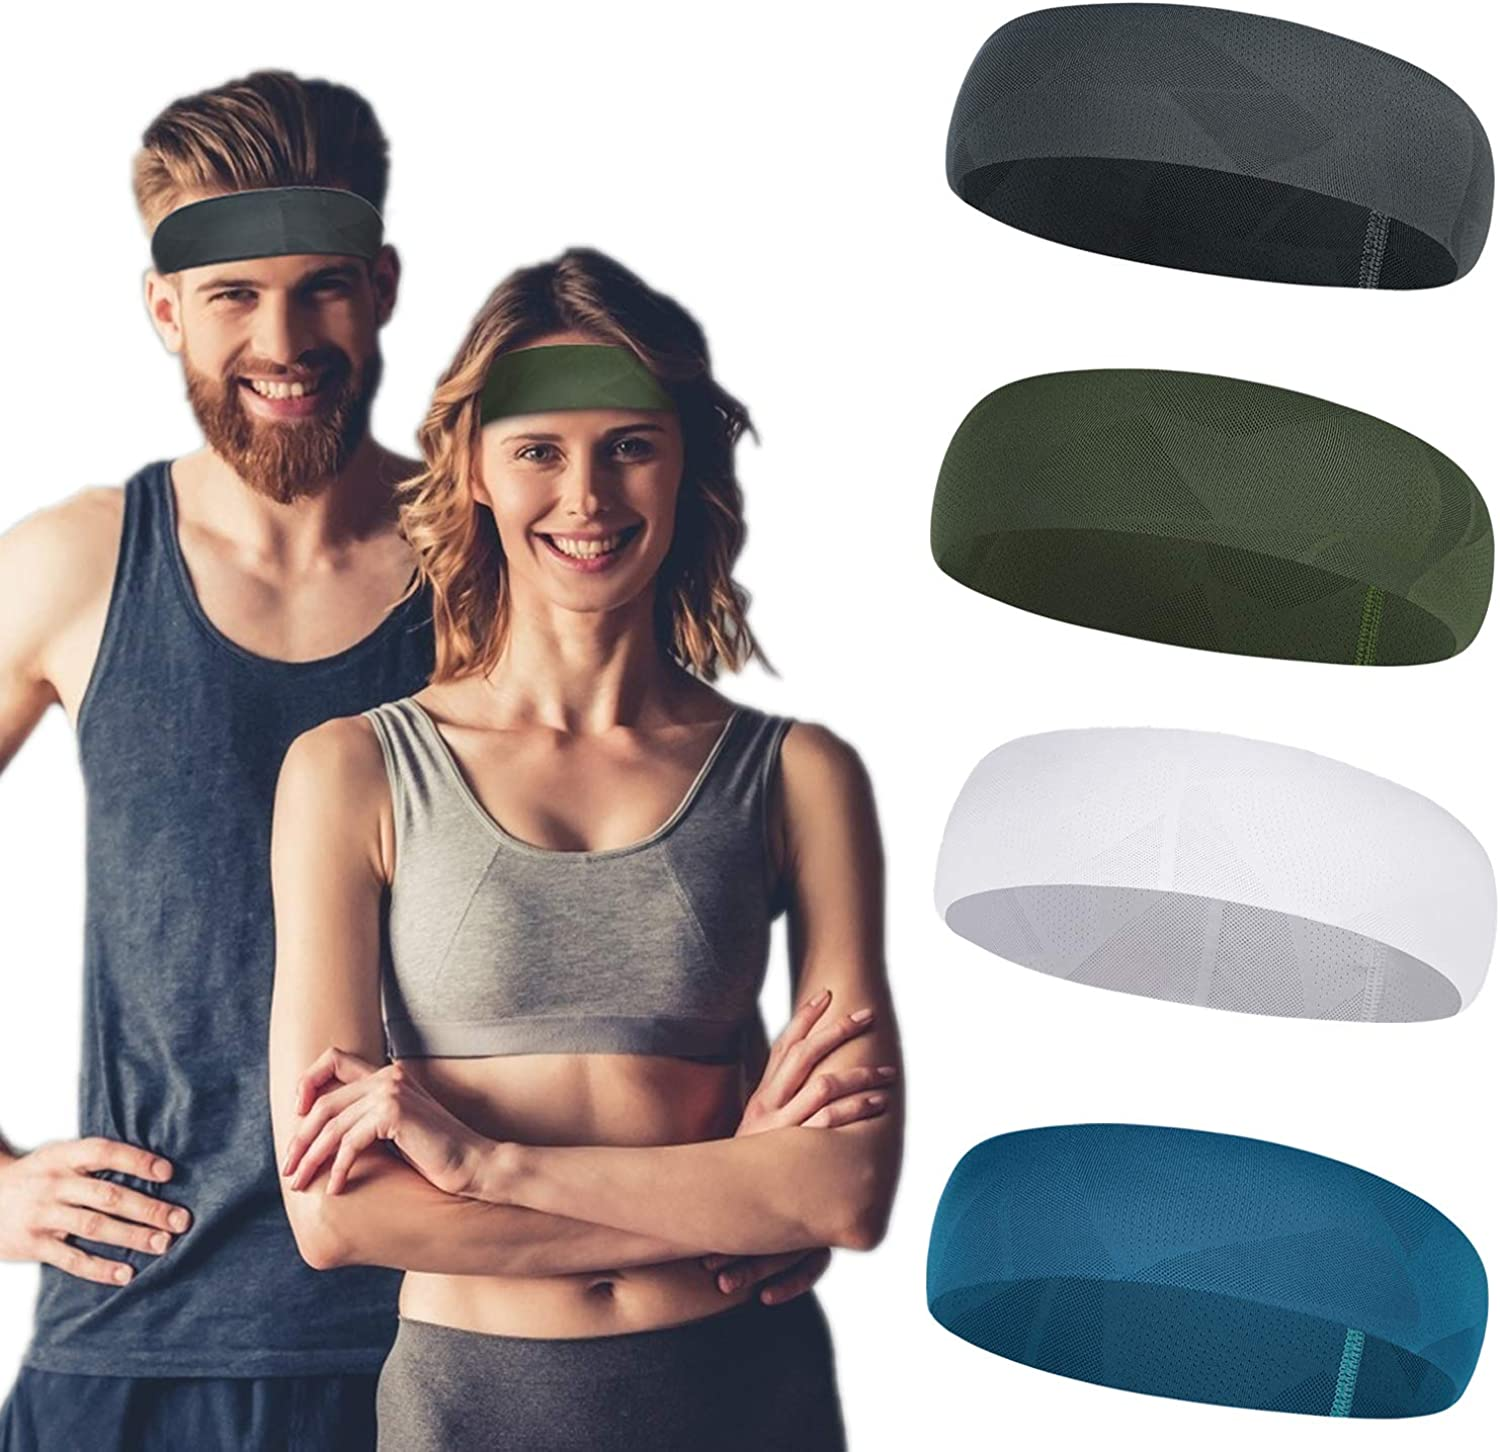 HAIAISO 4 Pack Men Quick Drying Breathable Wide Headband, Cooling Elastic Sports Headband for Cycling